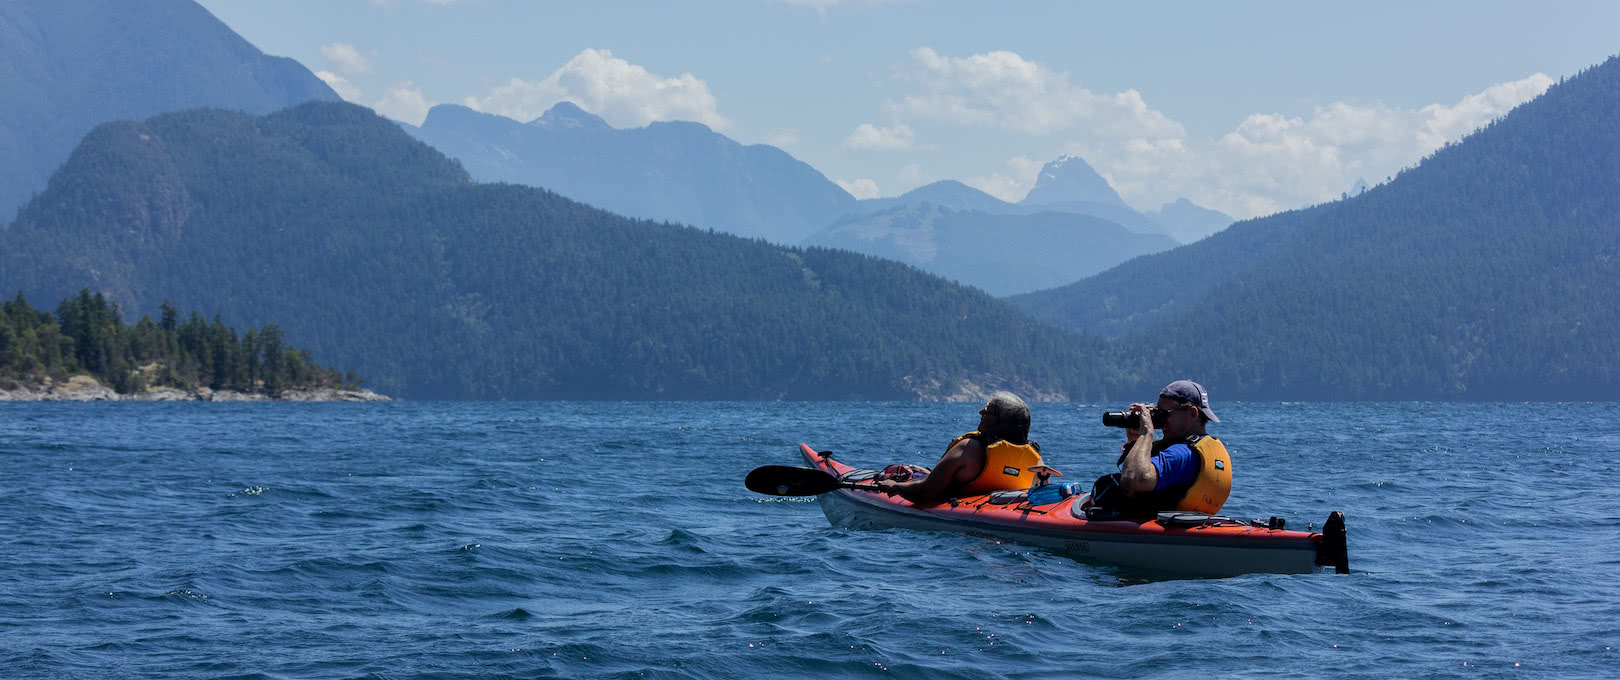 A kayaker takes a photo on a guided kayak package at the eco resort